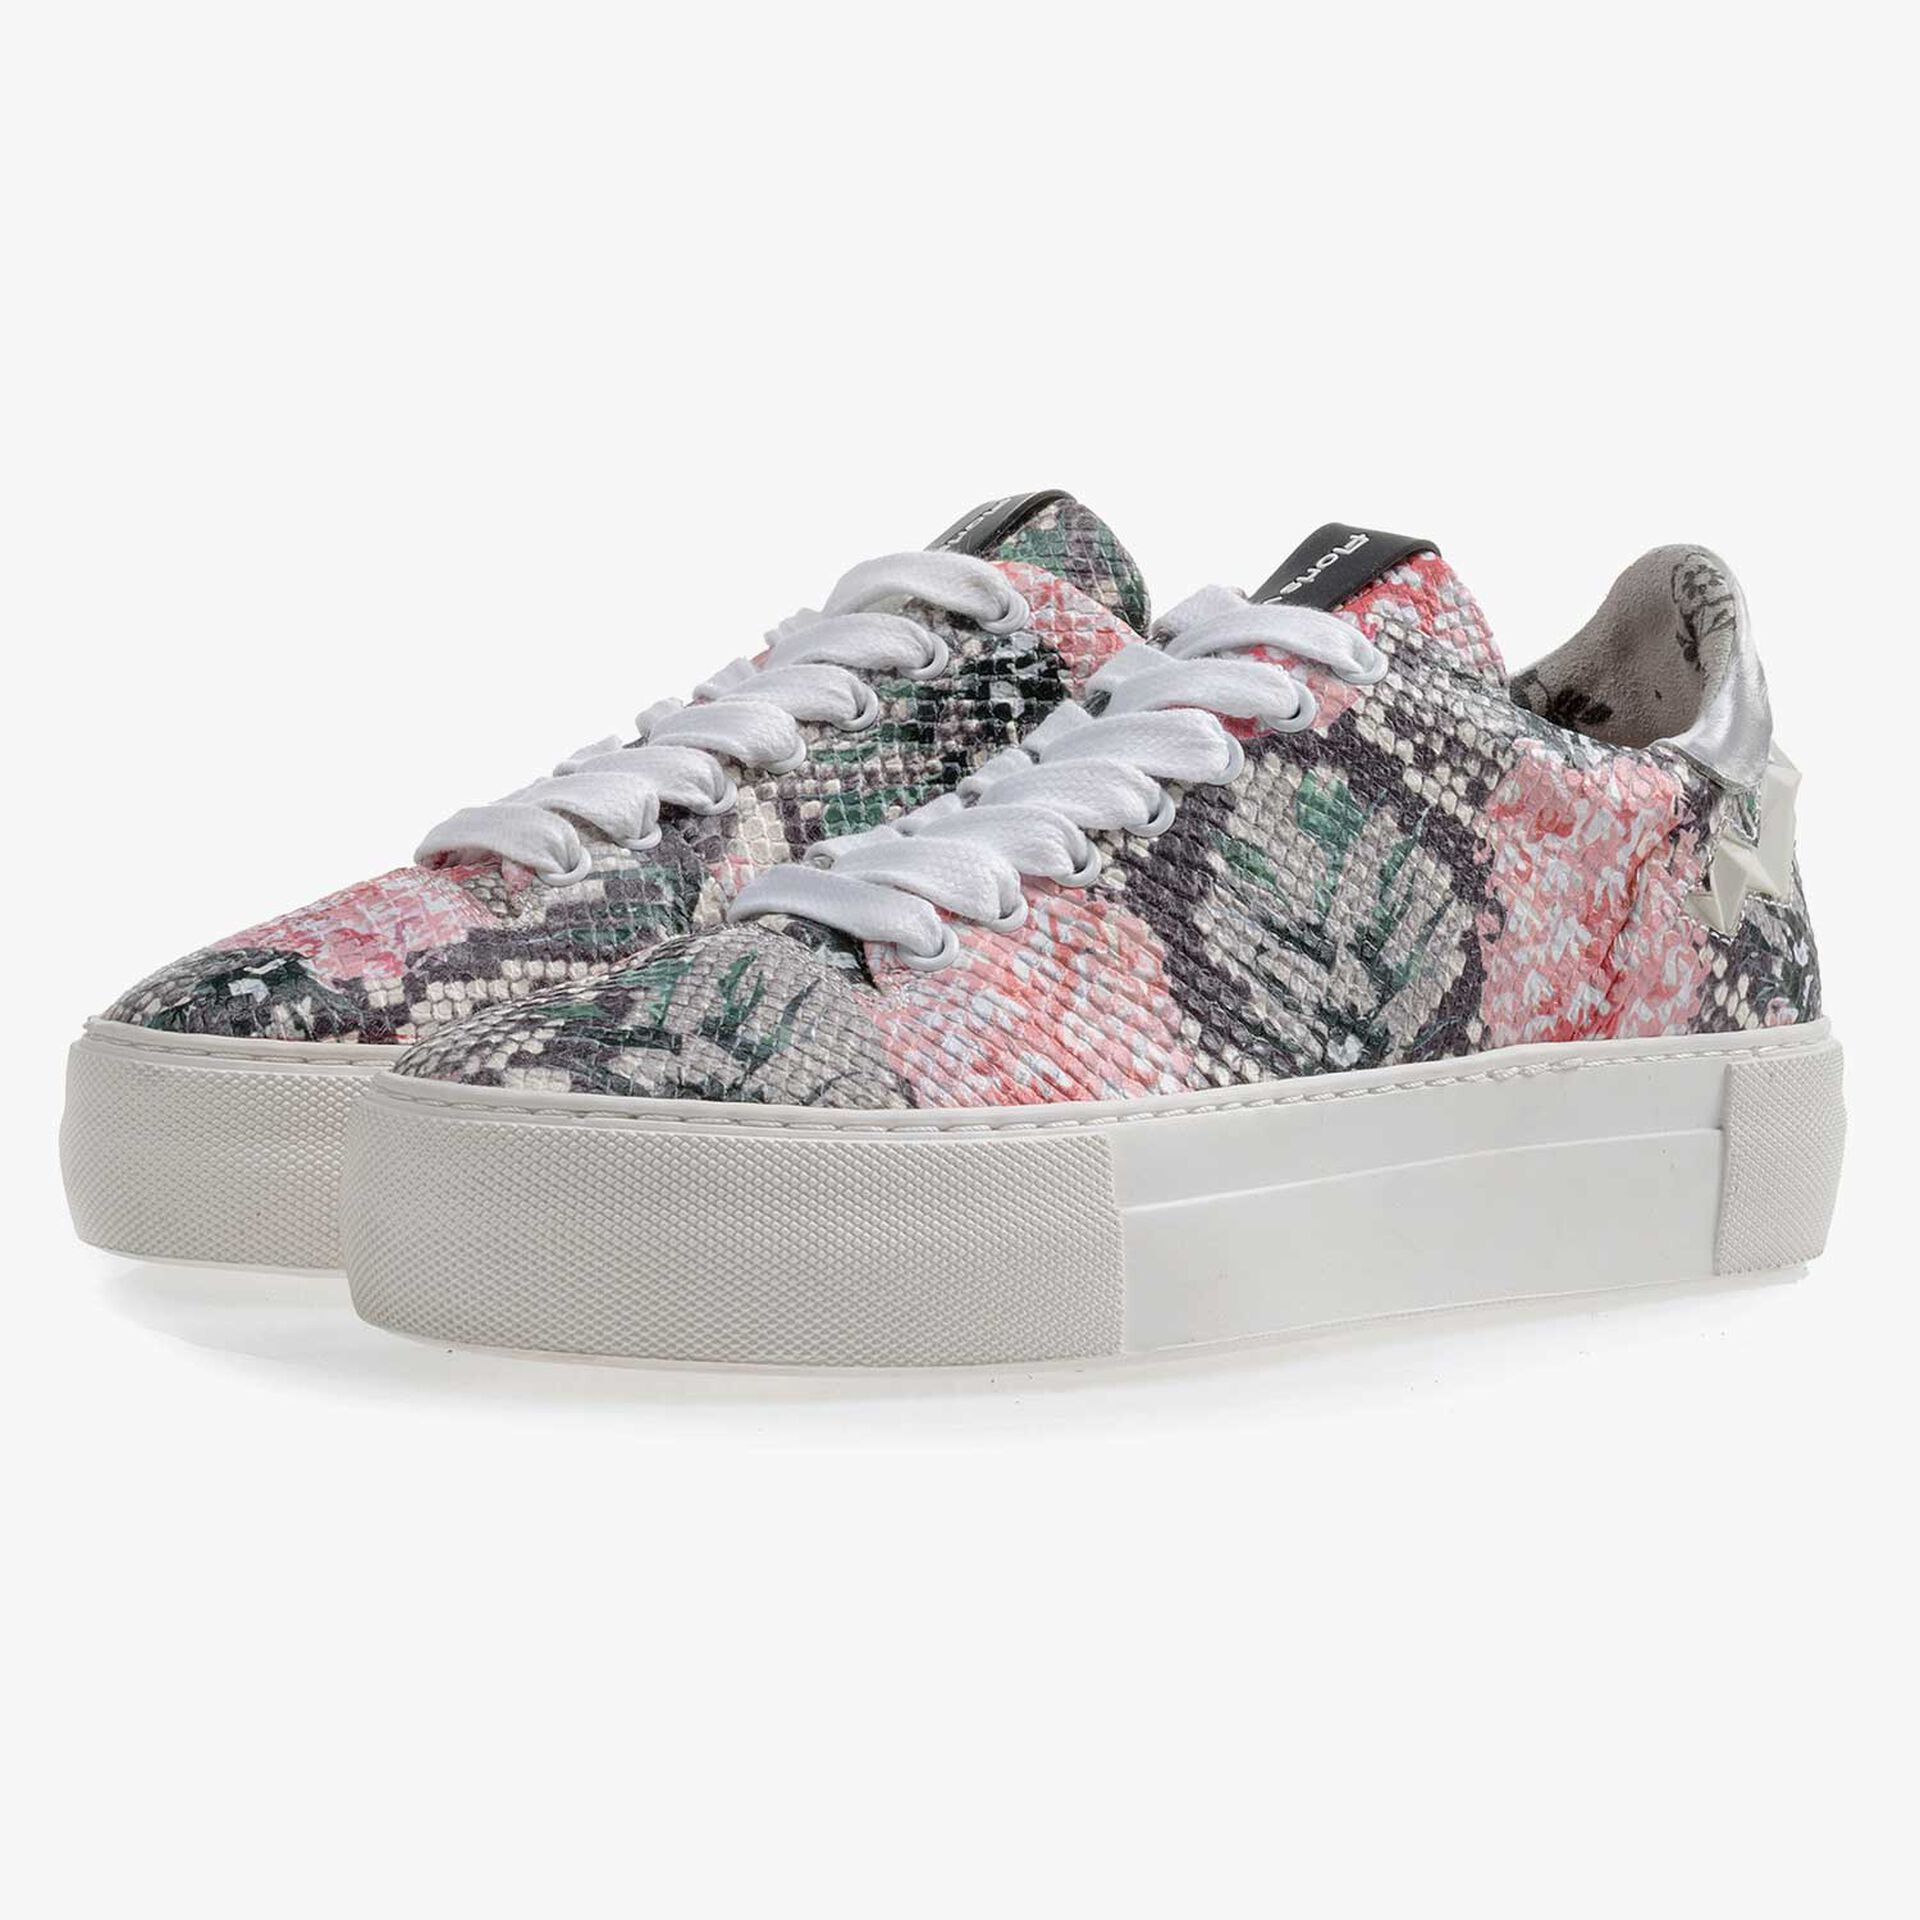 Multi-coloured leather sneaker with printed motif